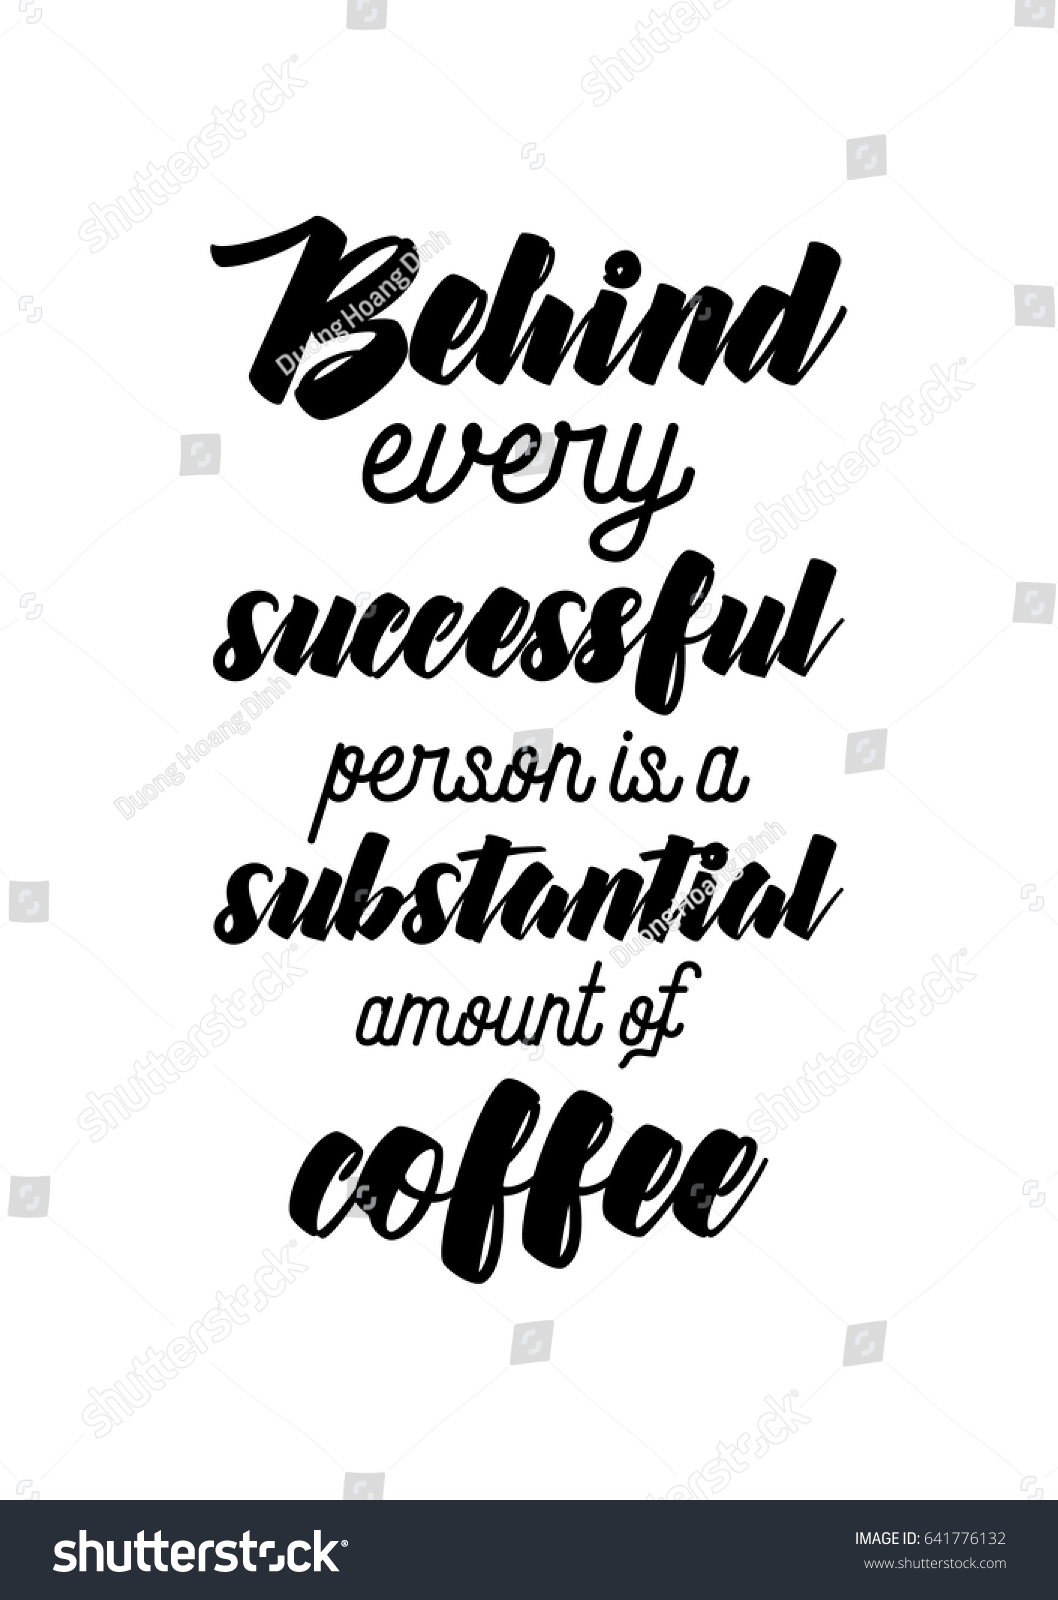 Graphic Design Quotes Coffee Related Illustration Quotes Graphic Design Stock Vector